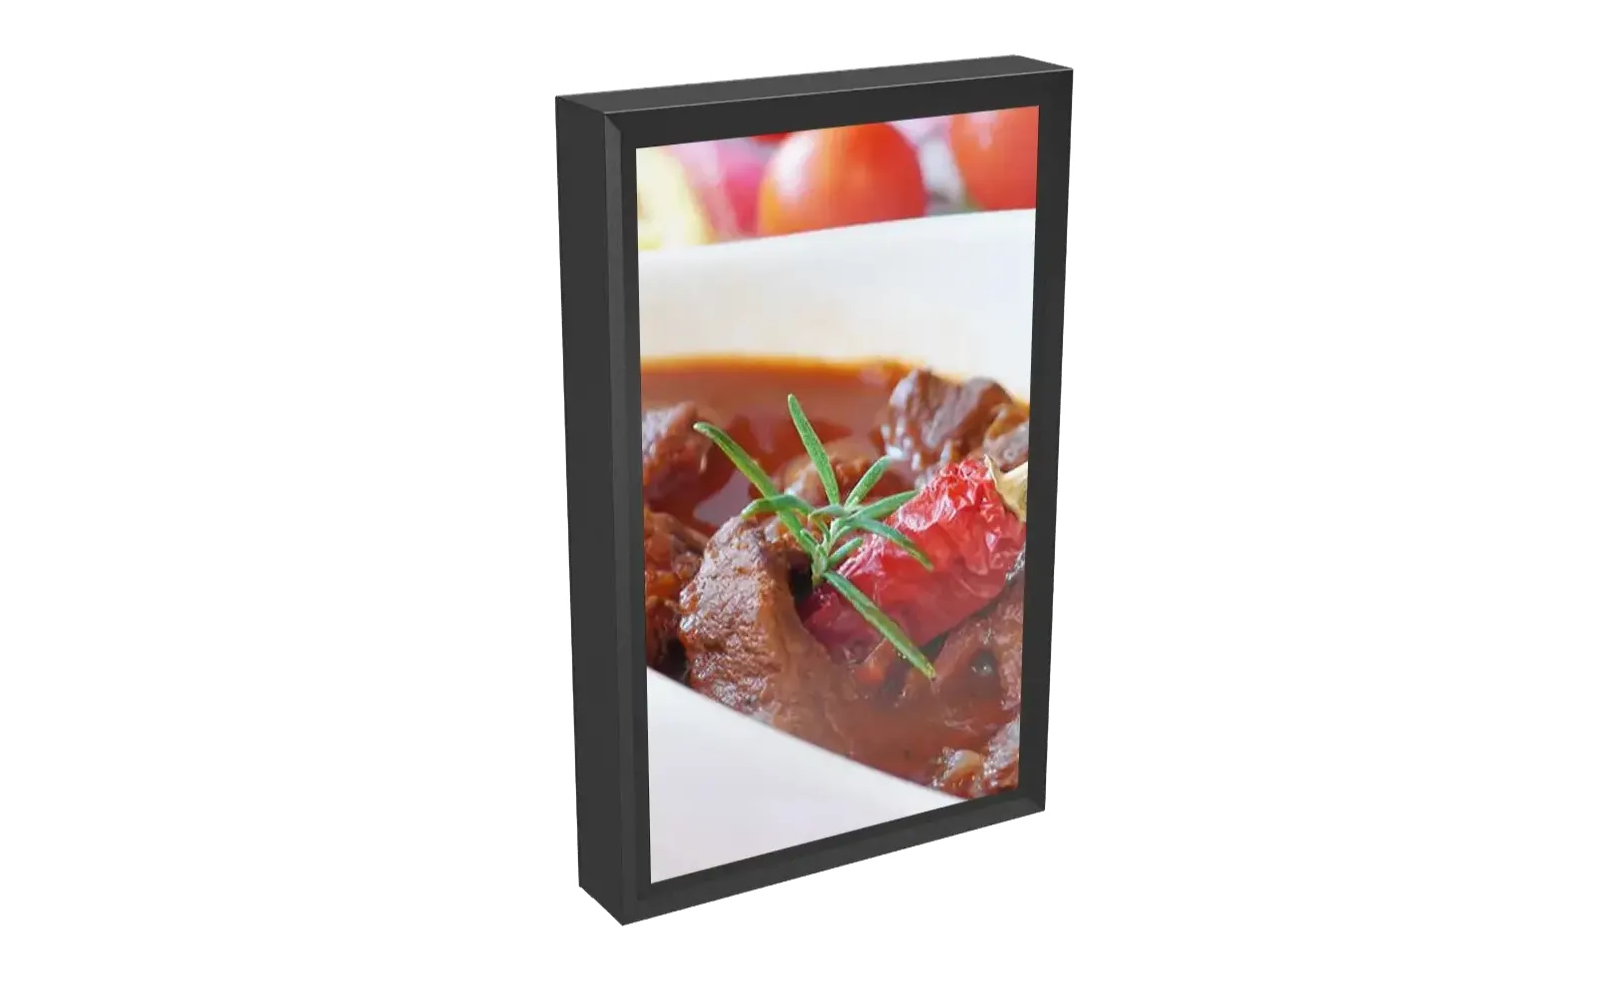 The TV Shield PRO Portrait Outdoor TV Enclosure and Digital Signage